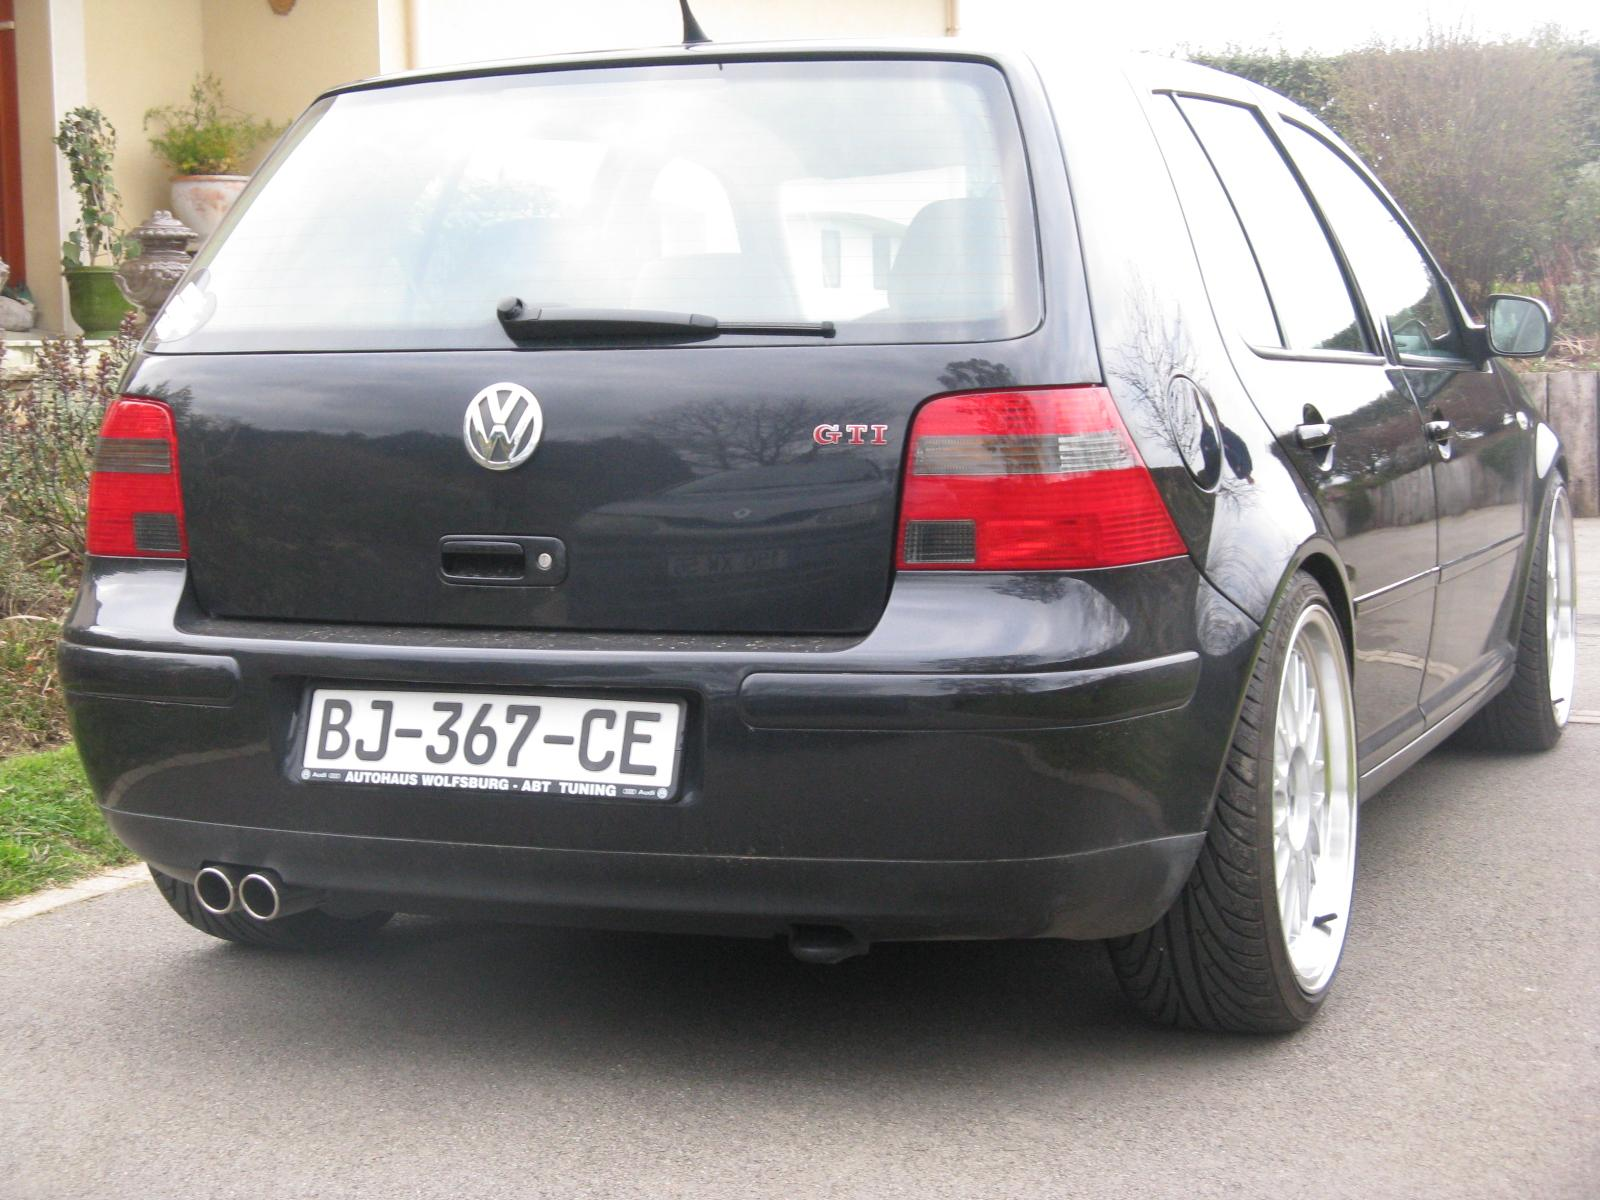 golf iv v5 gti carat photos garage des golf iv 2 0 2 3 v5 v6 r32 page 3 forum. Black Bedroom Furniture Sets. Home Design Ideas